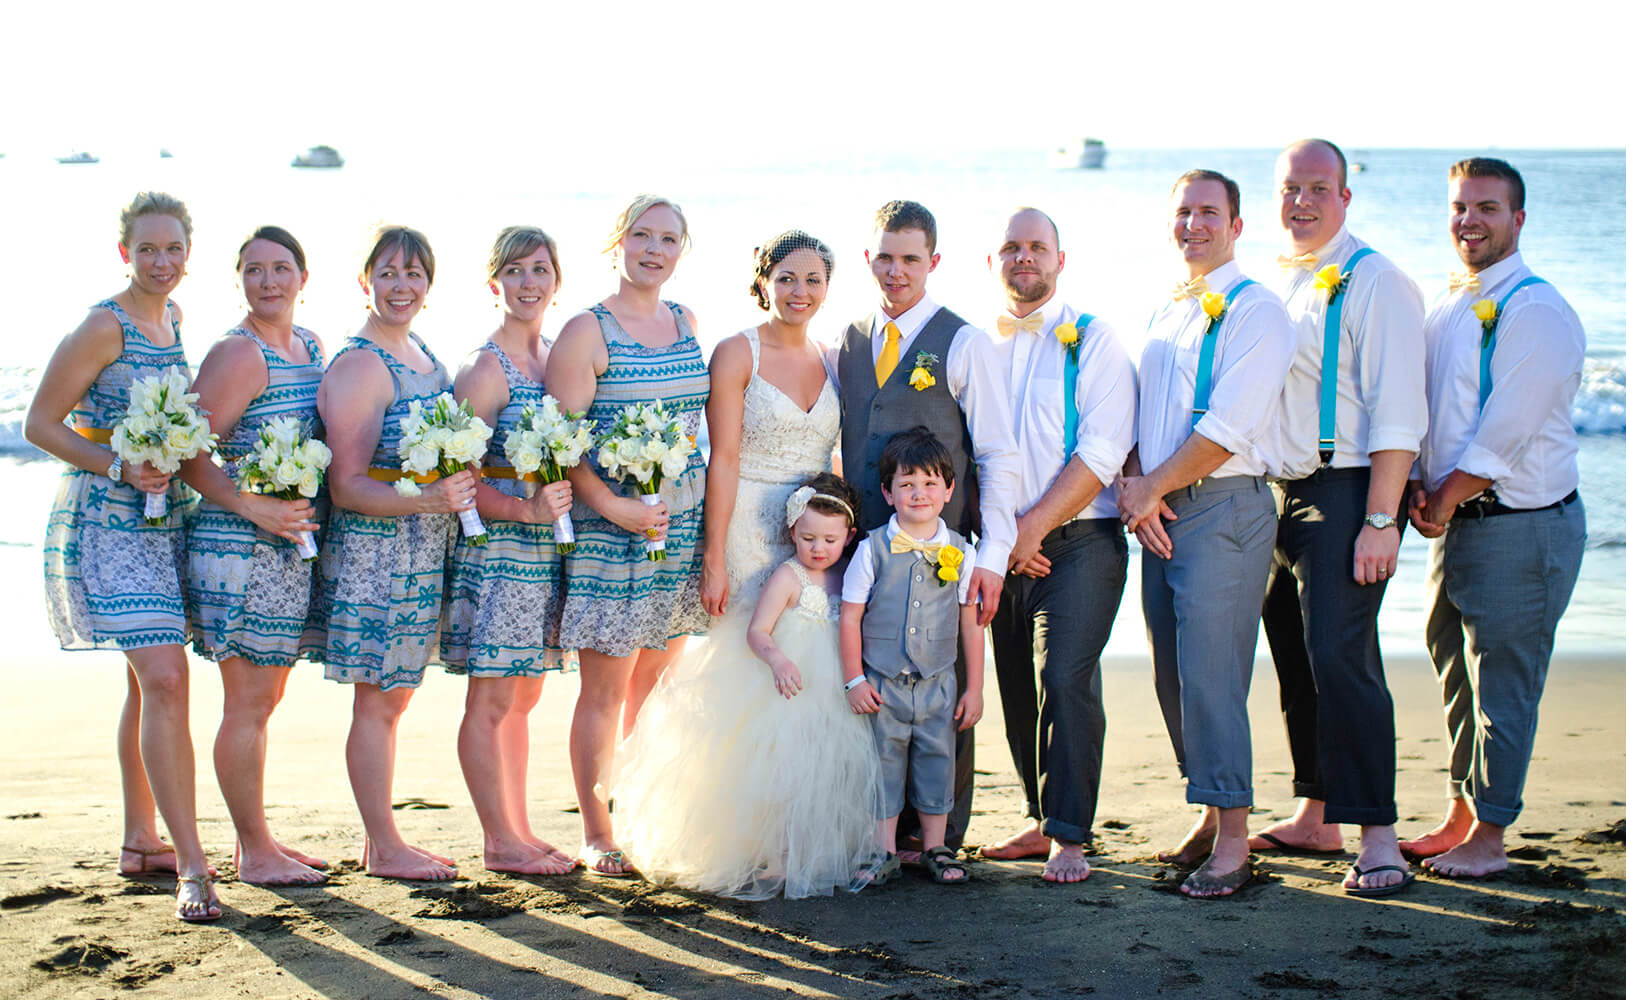 American Wedding Group.Central America Weddings Wedding Photography Service In Costa Rica